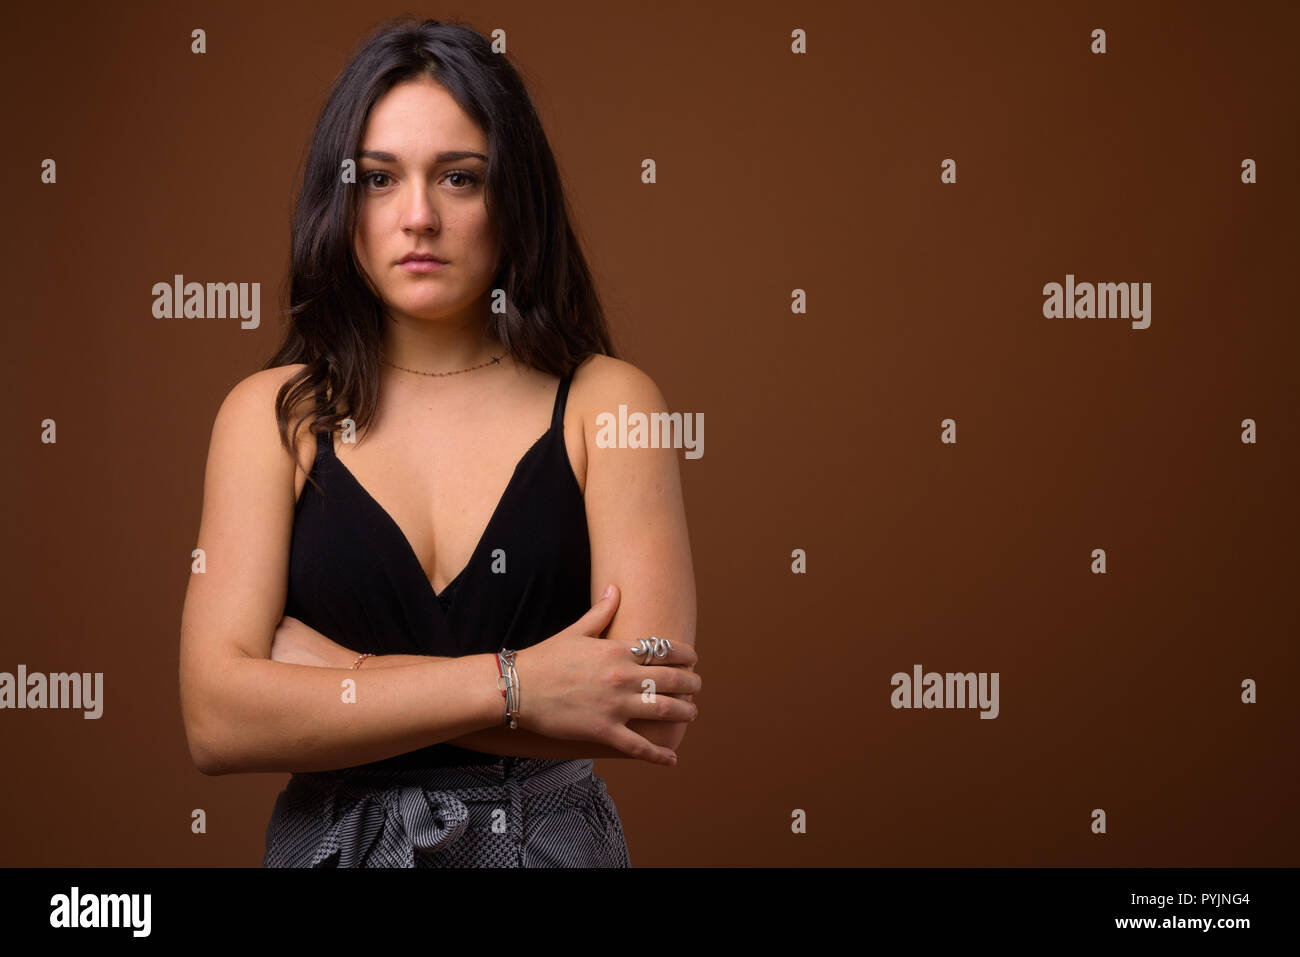 Studio shot of young beautiful woman against brown background - Stock Image